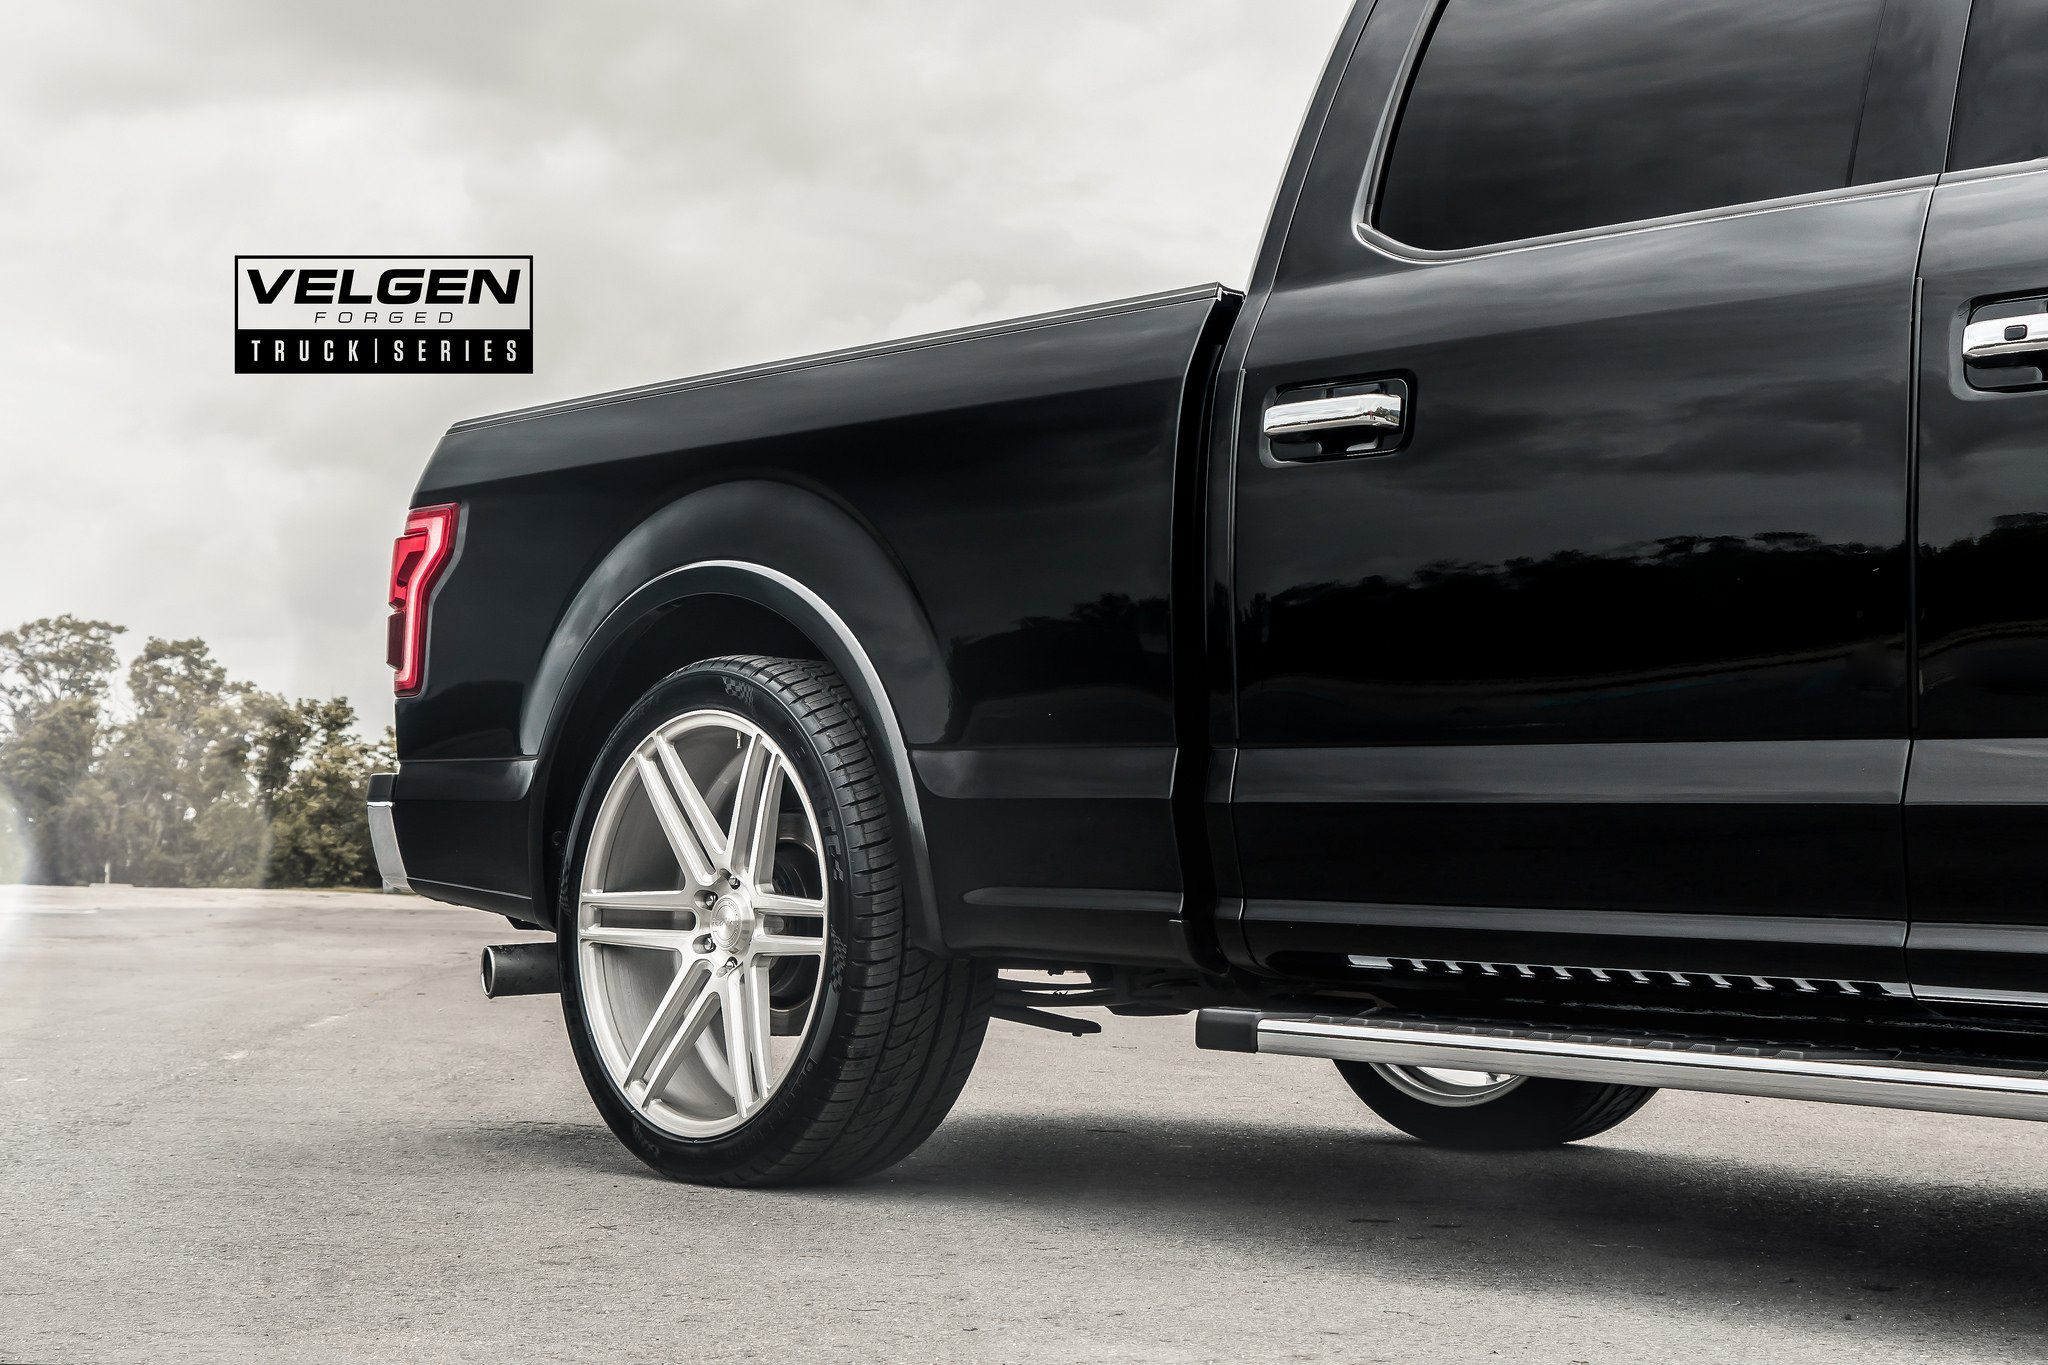 Black Ford F-150 Lariat with Truck Series Velgen Wheels - Photo by Velgen